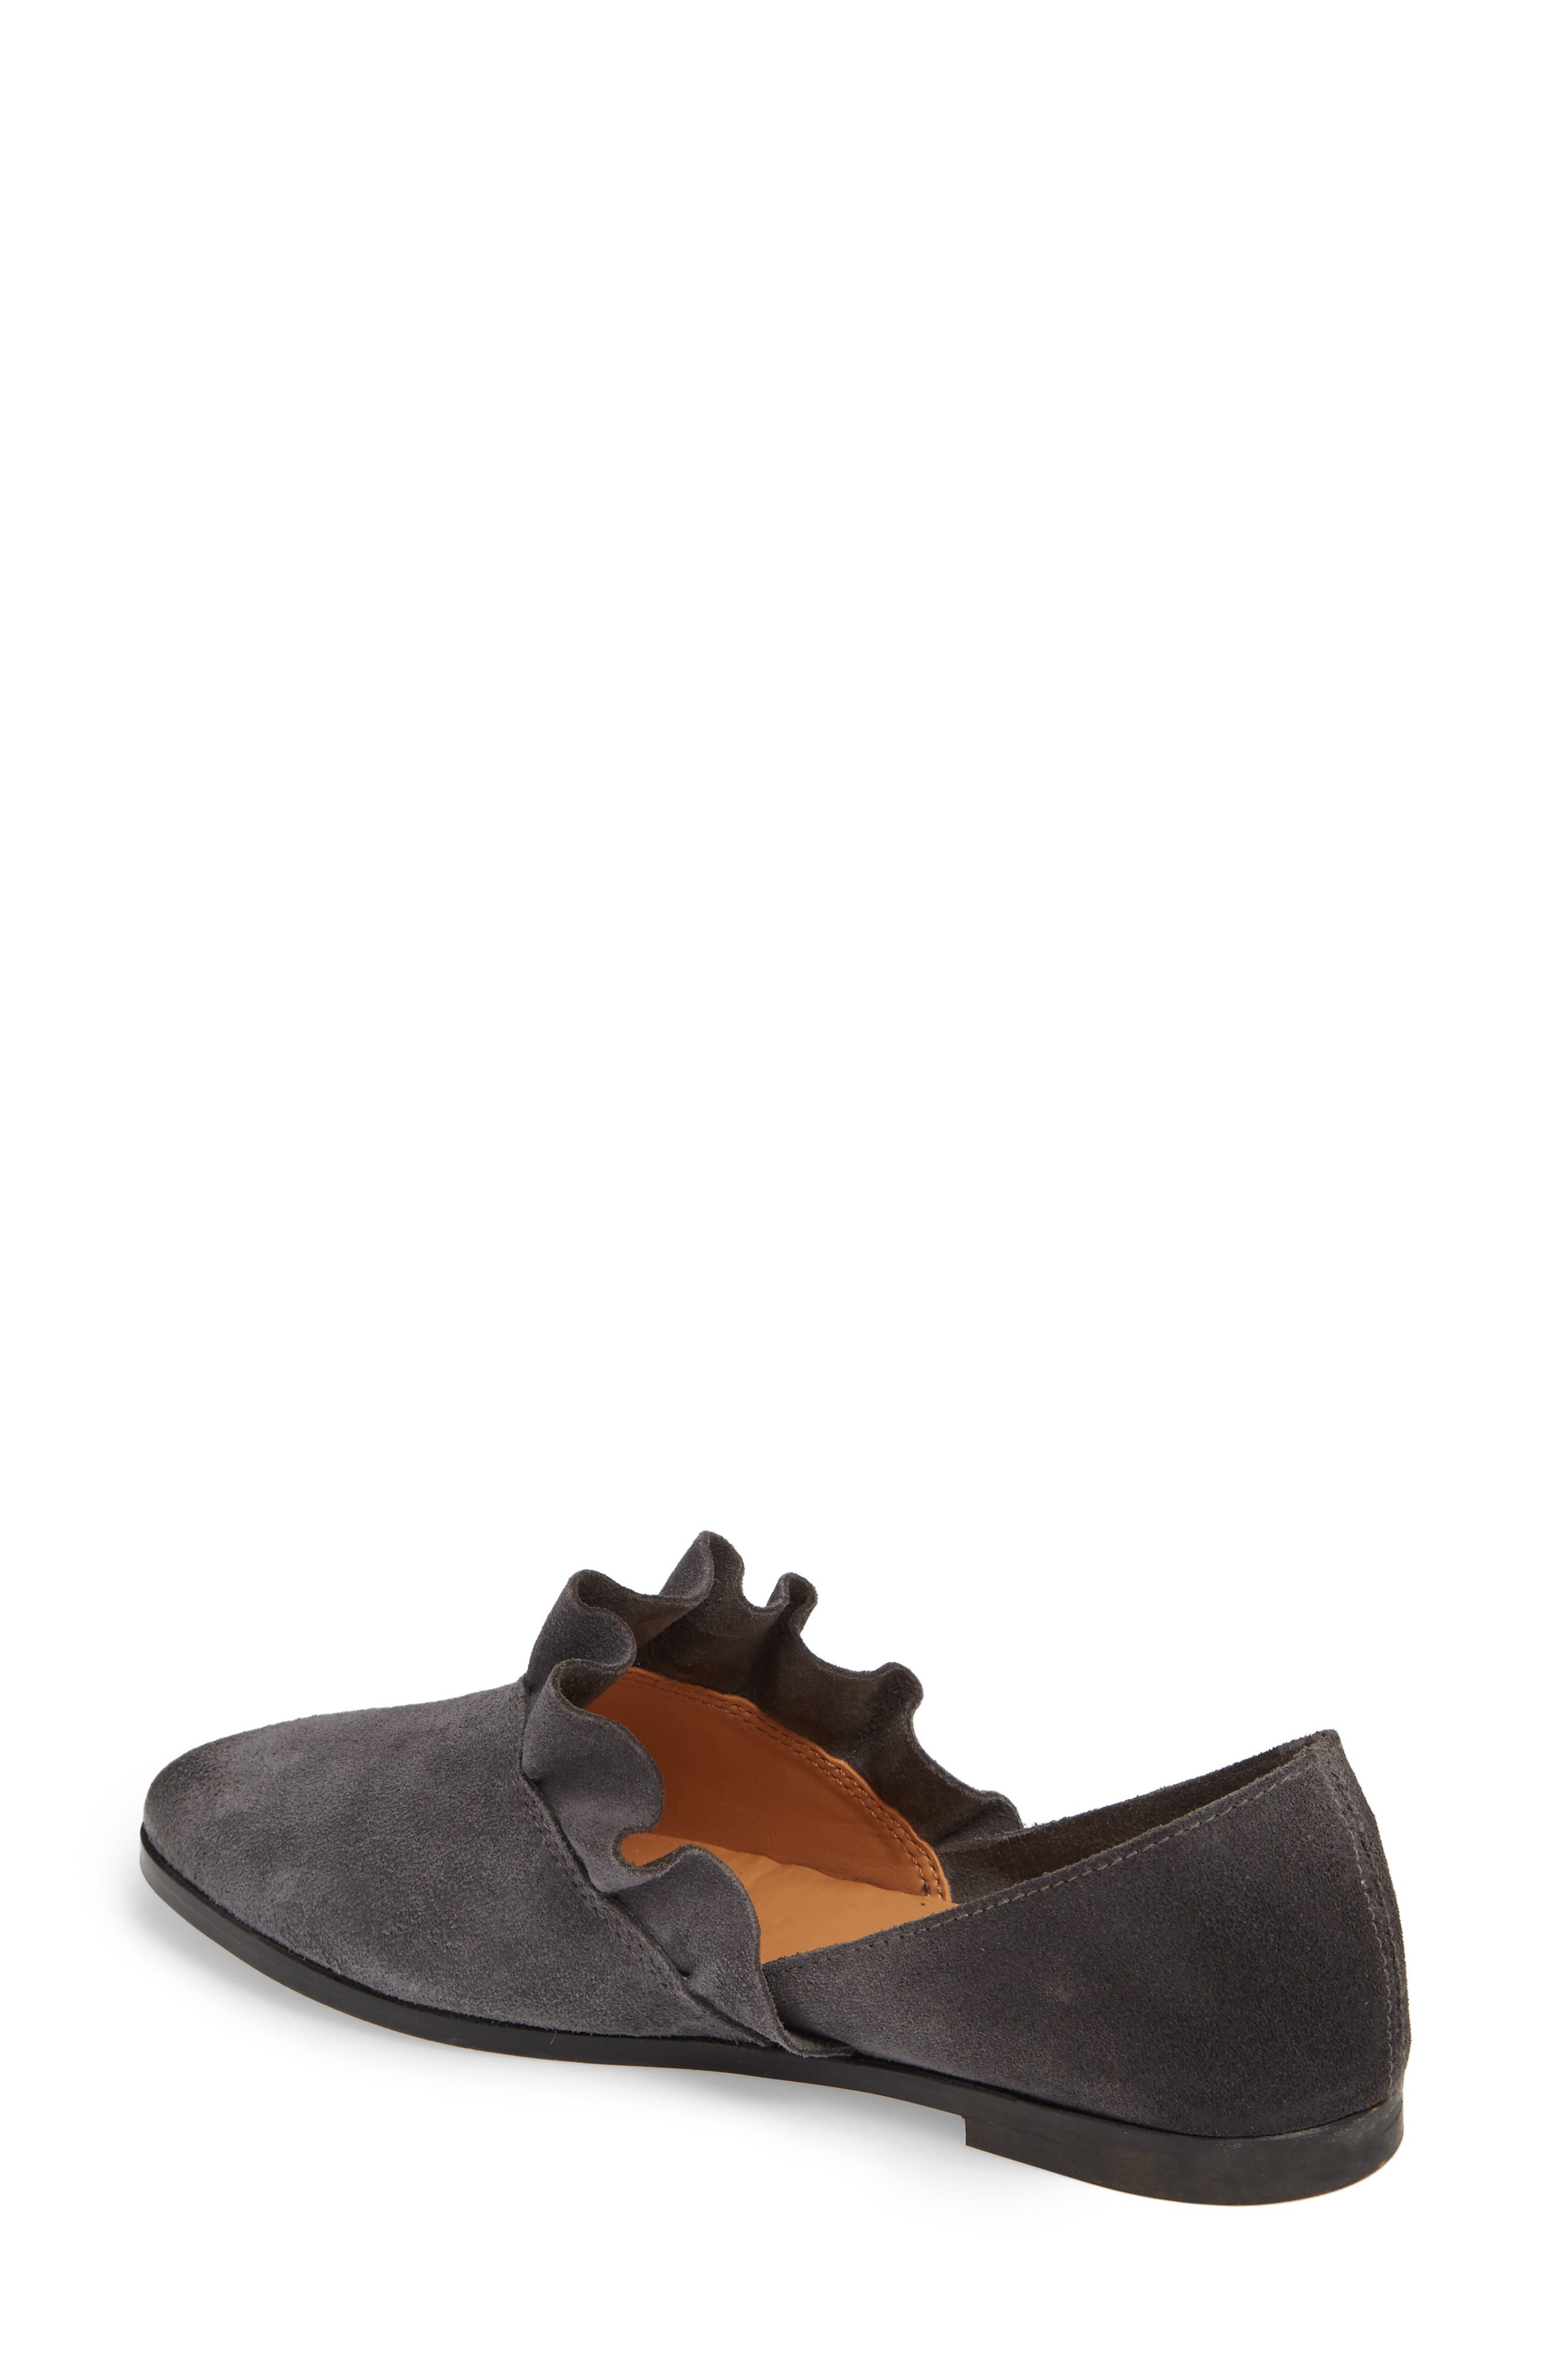 Gabbie Ruffle d'Orsay Flat,                             Alternate thumbnail 2, color,                             Ink Suede